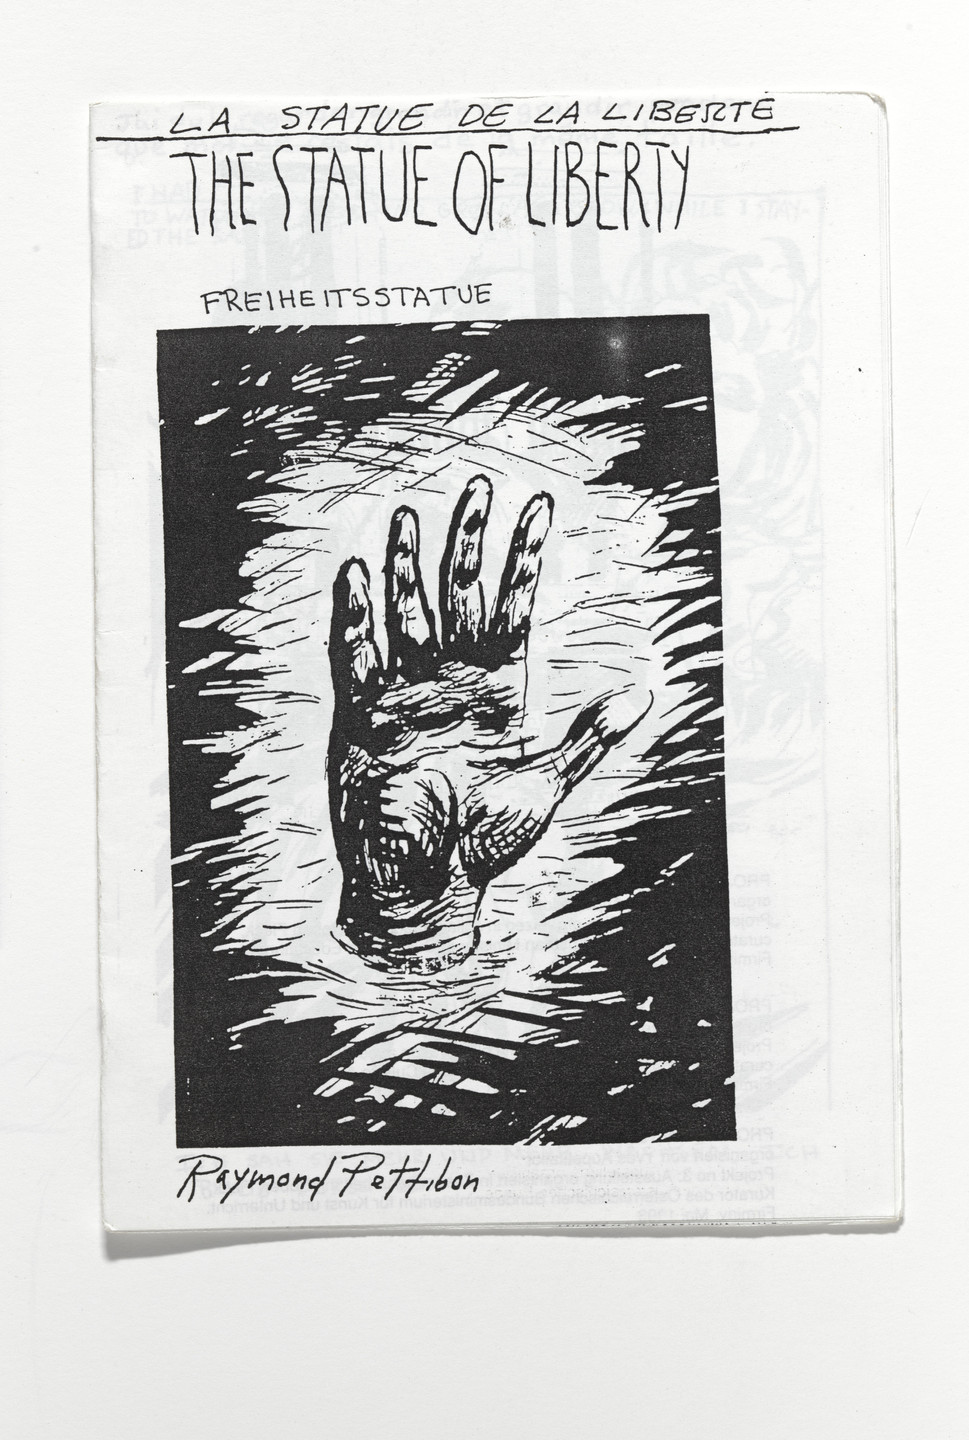 Raymond Pettibon. The Statue of Liberty. 1993